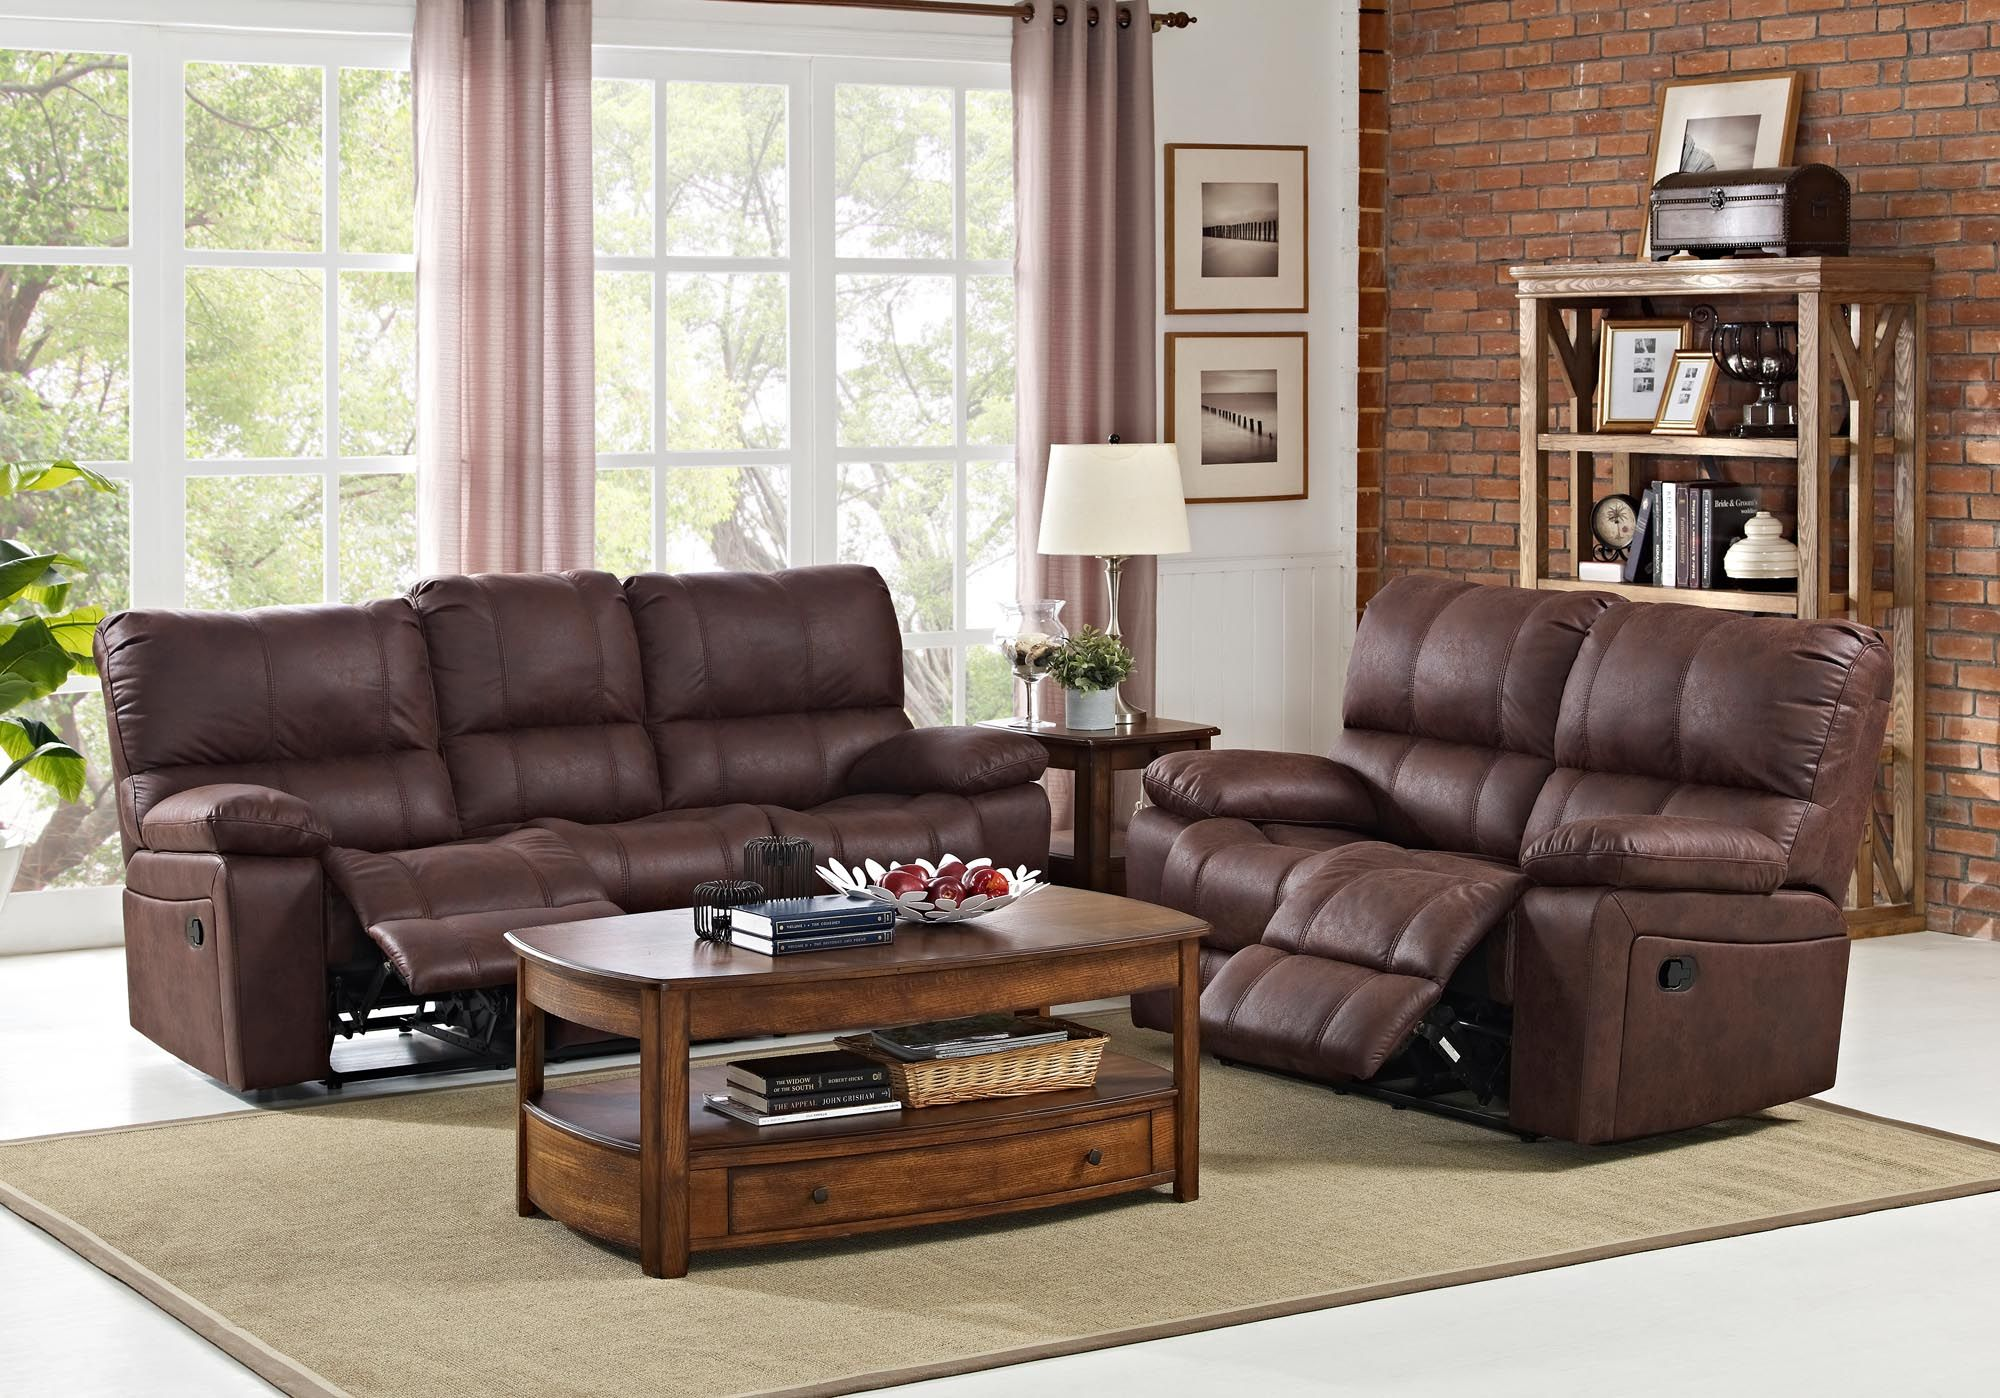 Riley Reclining Sofa And Love Seat Soft Brown Fabric Traditional Style Pillow Arms 100 Polyester 64 Pocketed Coil Cushions Sinuous Springs